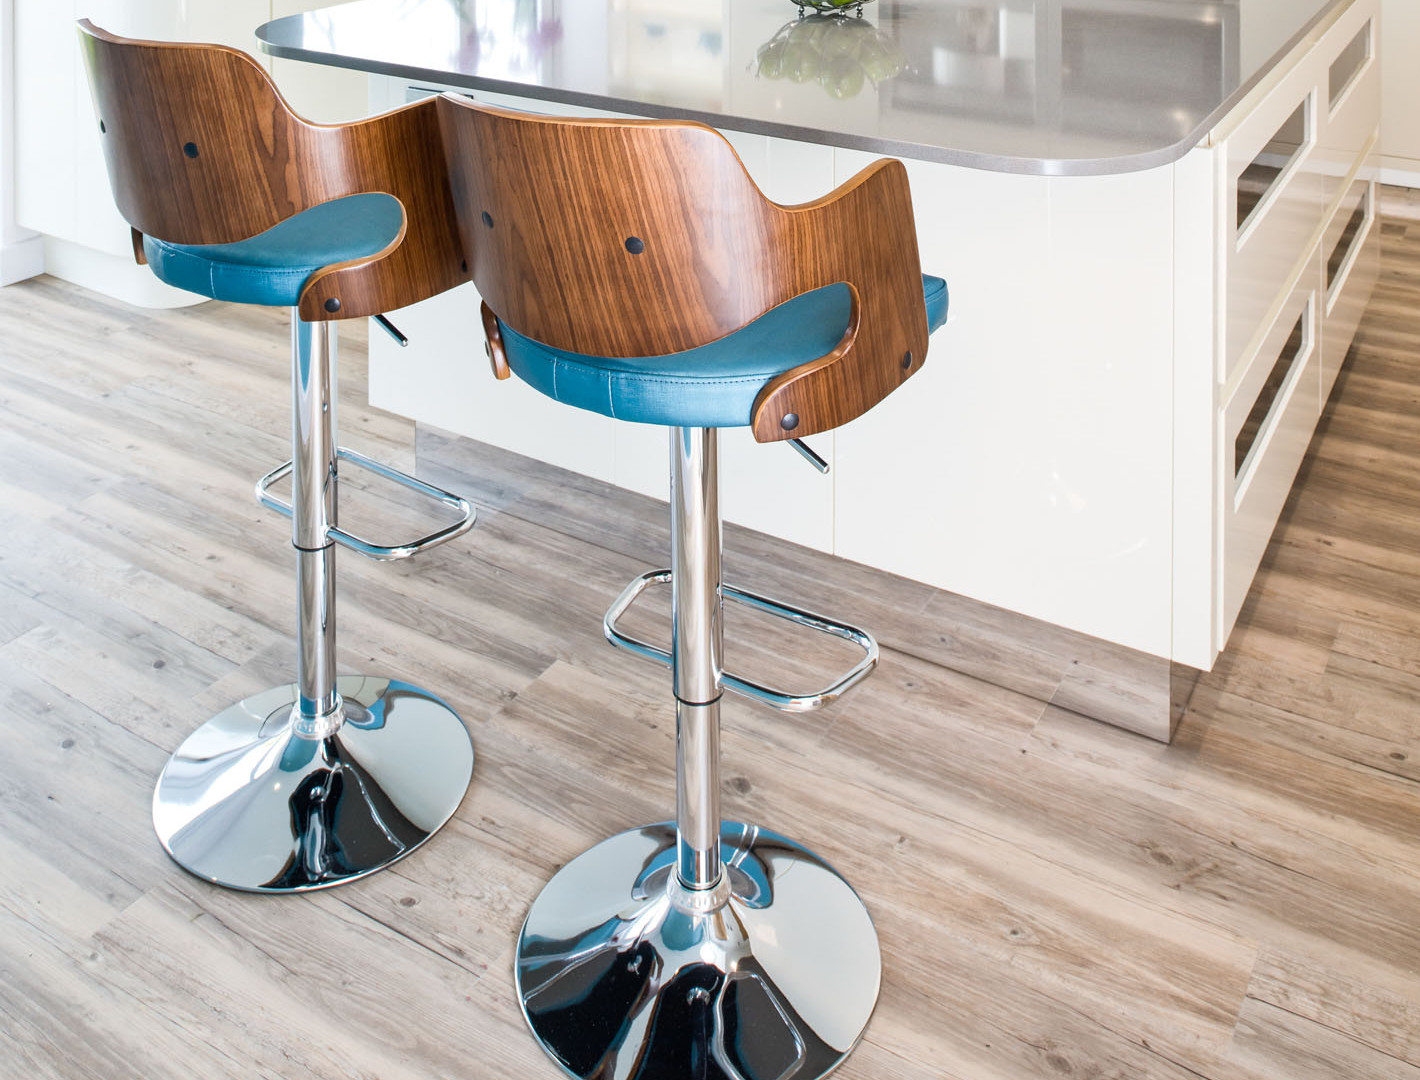 Freya Stools in Walnut & Teal by Kuche & Bagno